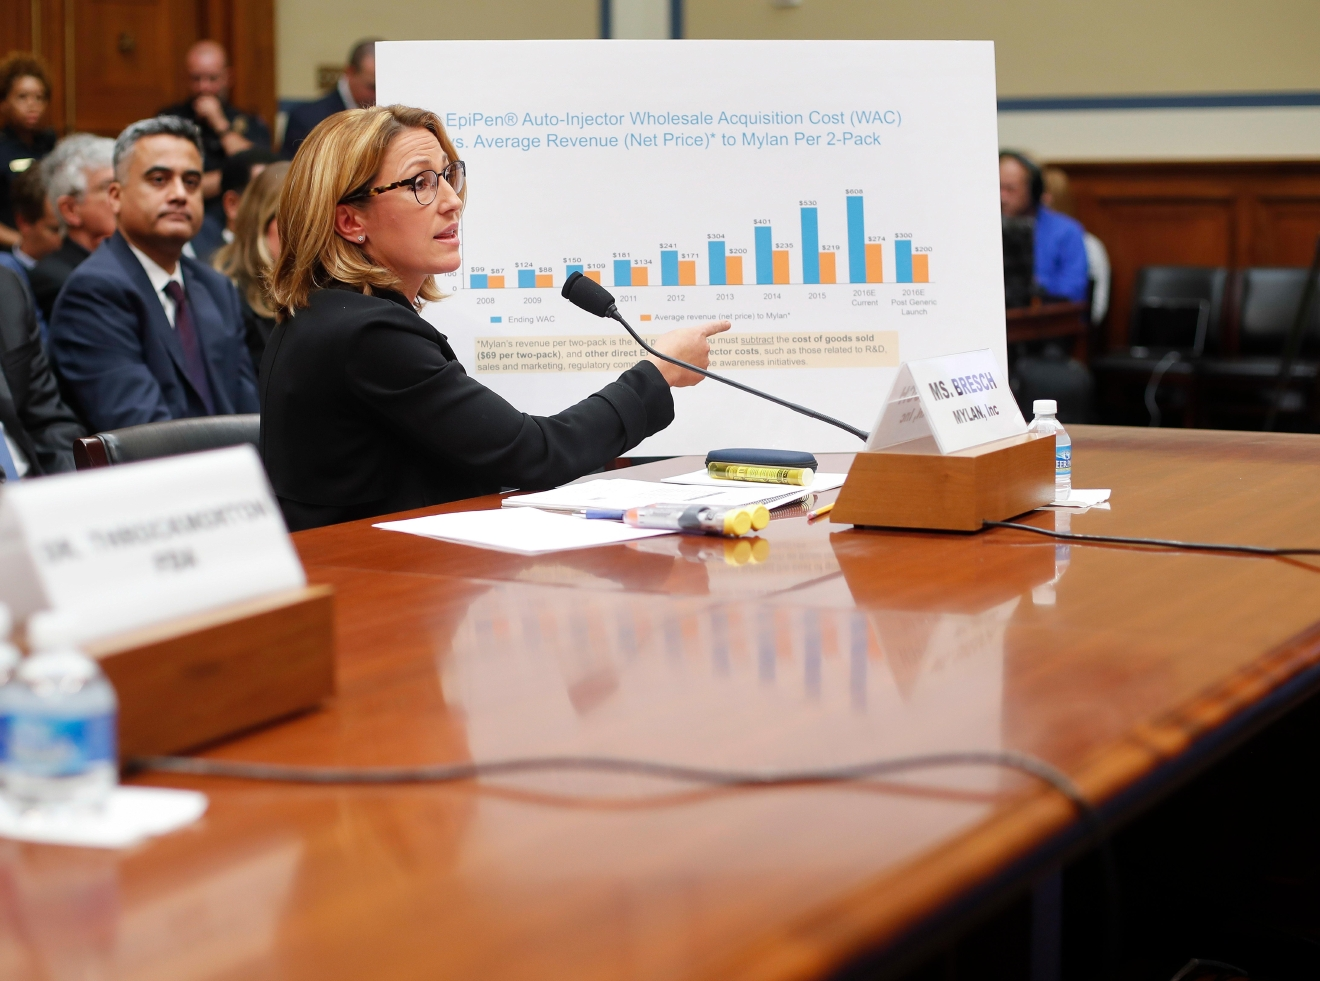 Mylan CEO Heather Bresch points to her chart to help her answer questions while testifying on Capitol Hill in Washington, Wednesday, Sept. 21, 2016, before the House Oversight Committee hearing on EpiPen price increases. Bresch defended the cost for life-saving EpiPens, signaling the company has no plans to lower prices despite a public outcry and questions from skeptical lawmakers. (AP Photo/Pablo Martinez Monsivais)